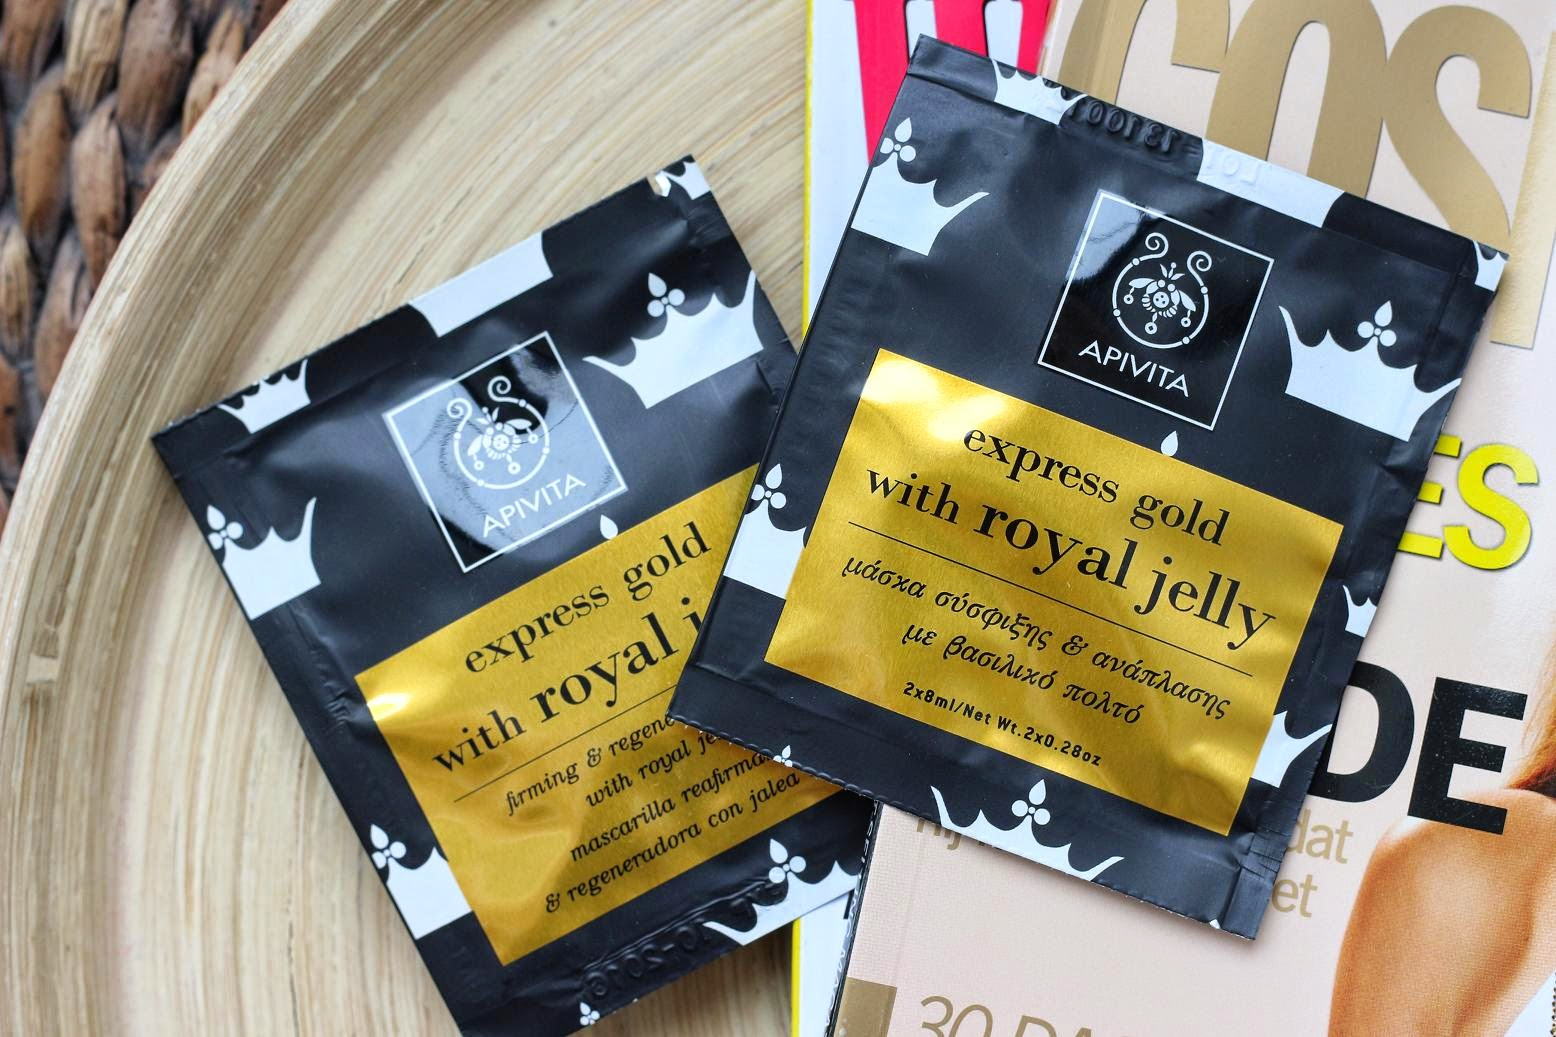 Apivita Express Gold Royal Jelly